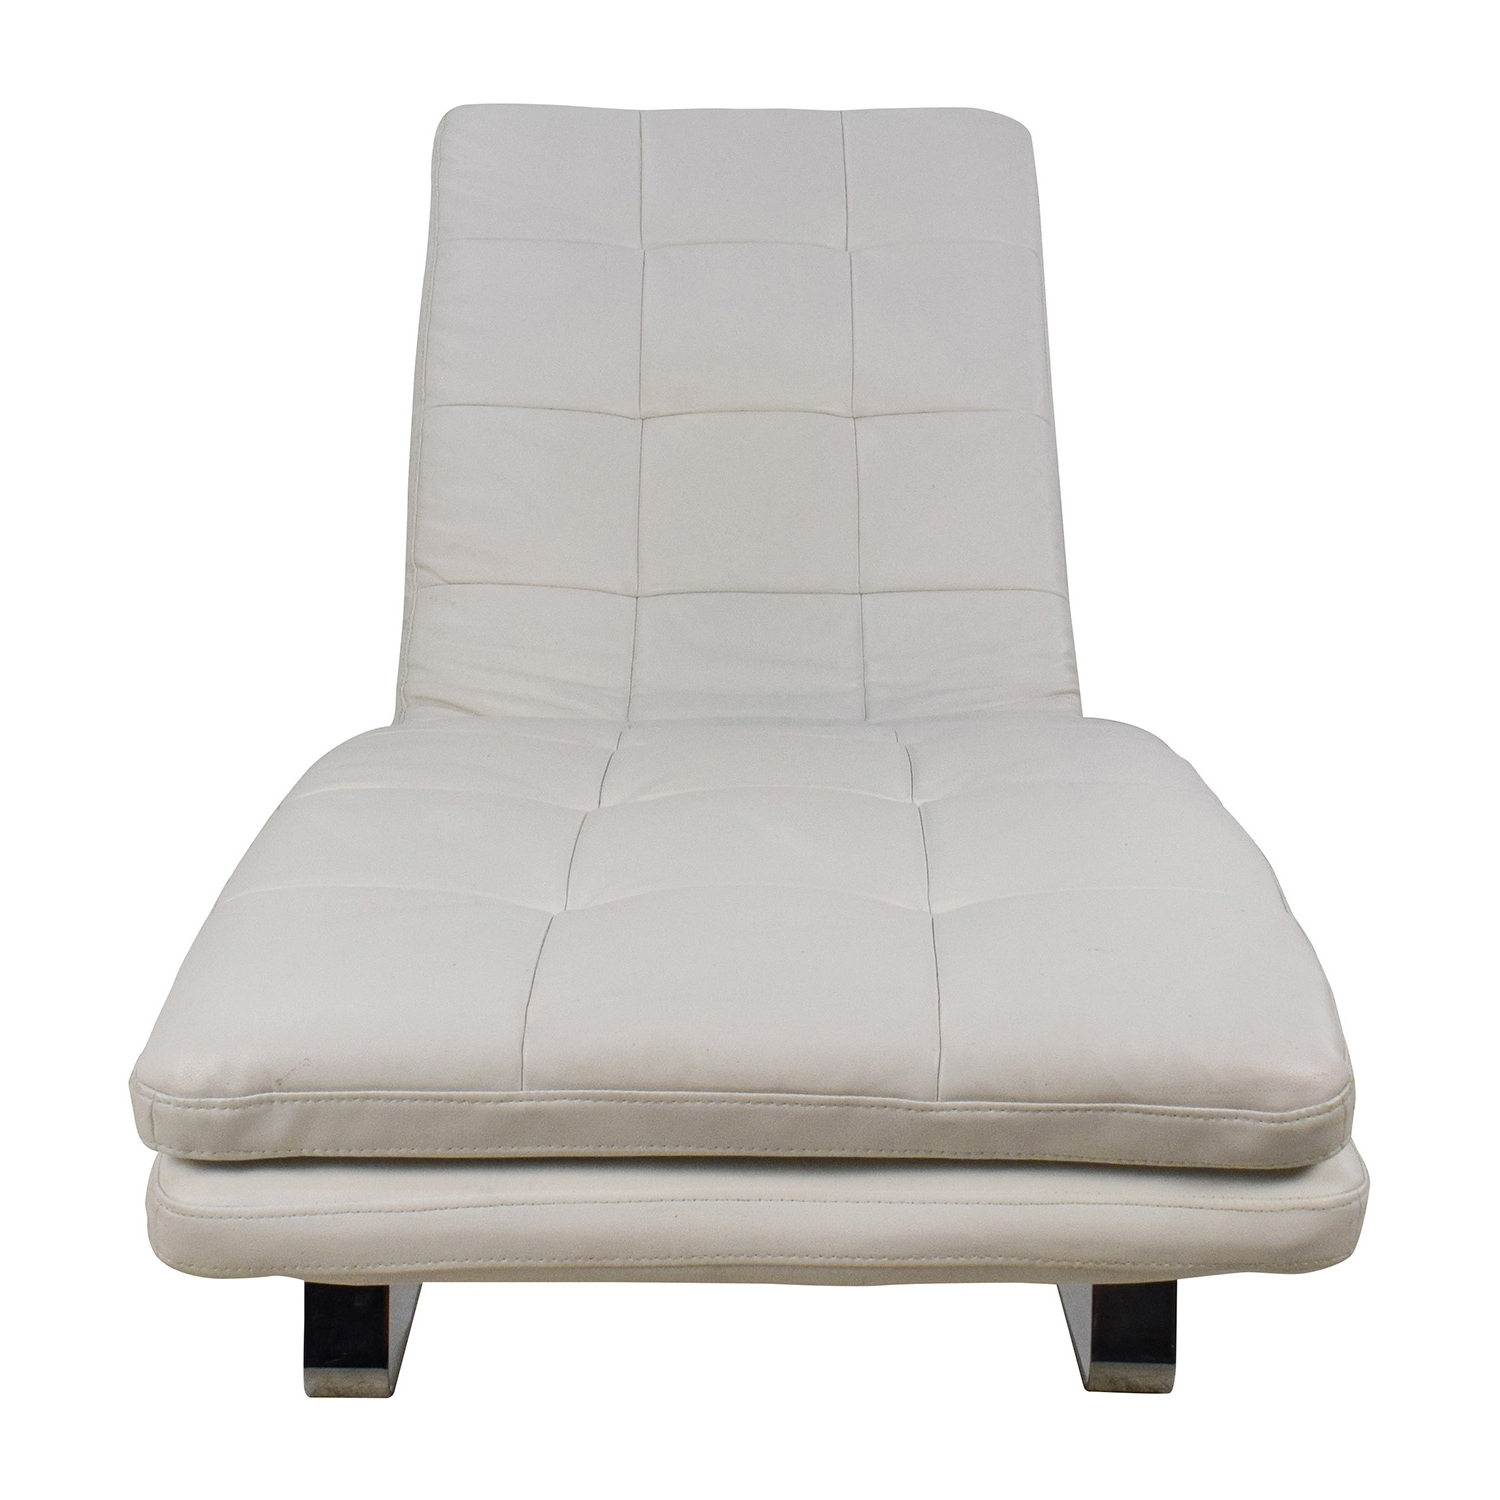 [%85% Off – Leija Designs Leija Designs Brown Mohair Chaise Lounger With Regard To Recent White Chaises|White Chaises Inside 2018 85% Off – Leija Designs Leija Designs Brown Mohair Chaise Lounger|Well Liked White Chaises With 85% Off – Leija Designs Leija Designs Brown Mohair Chaise Lounger|Most Recently Released 85% Off – Leija Designs Leija Designs Brown Mohair Chaise Lounger With White Chaises%] (View 9 of 15)